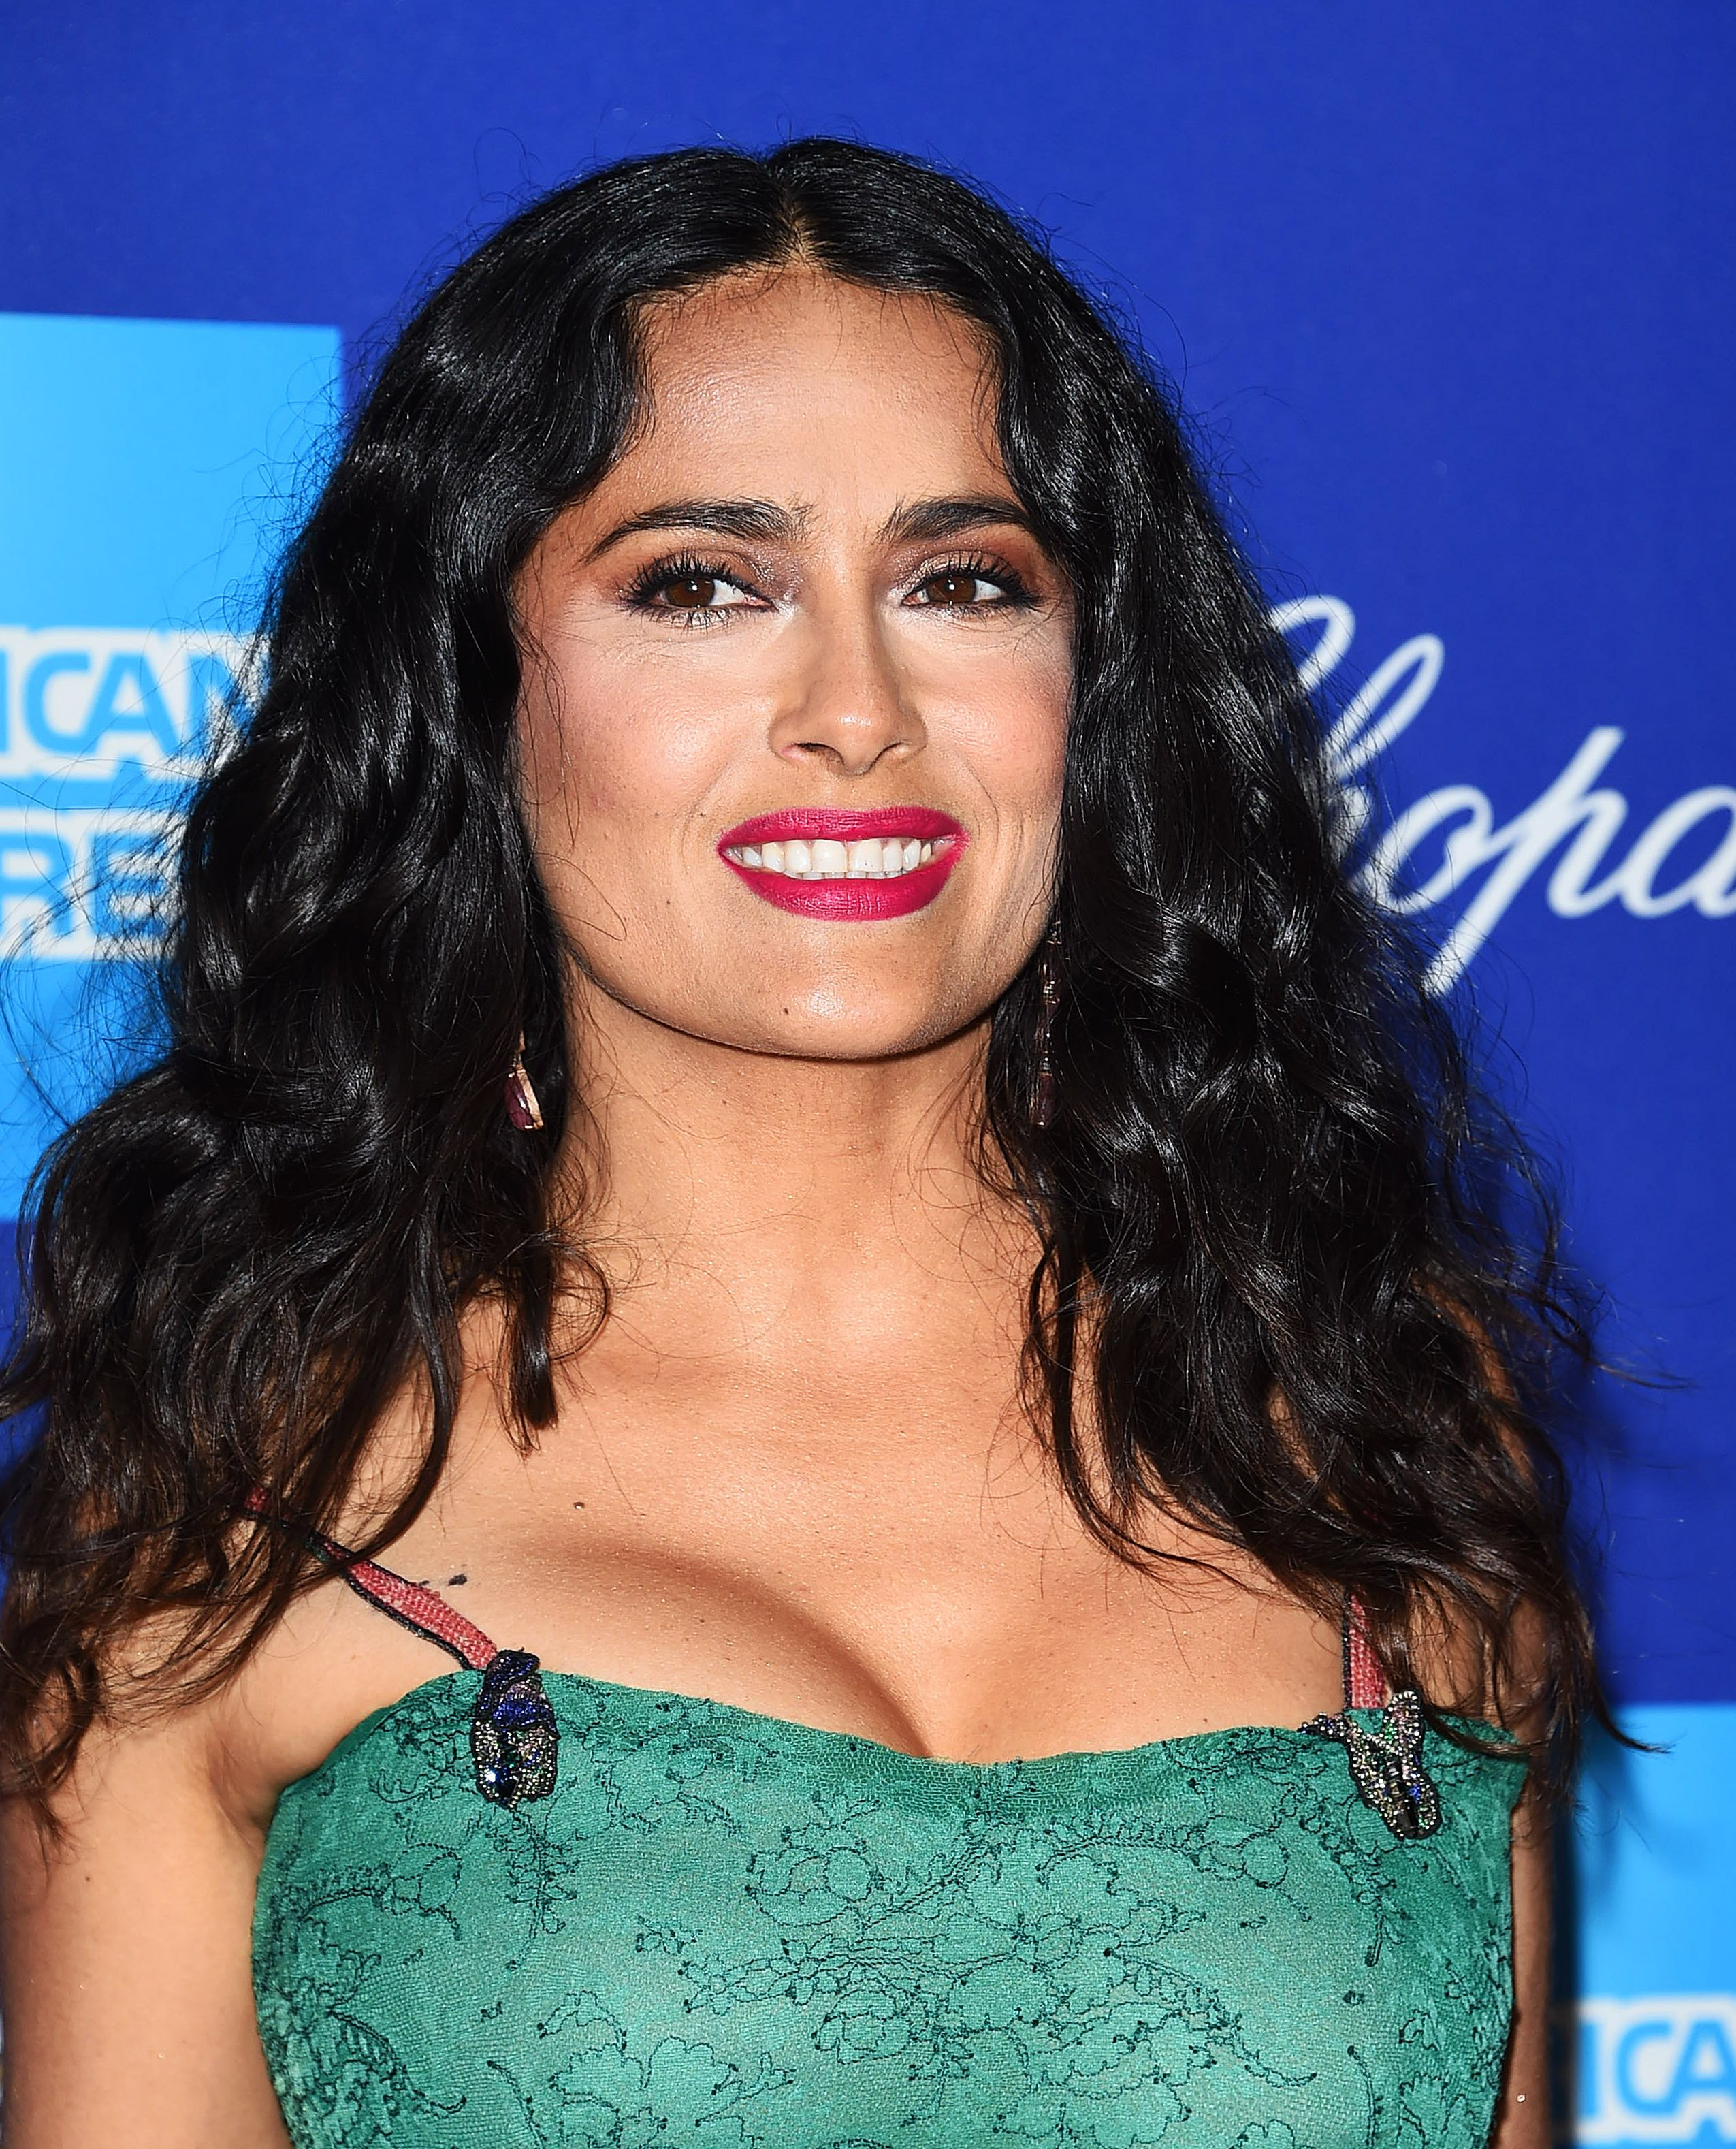 , Palm Springs, CA - 01/02/18 - The 29th Palm Springs International Film Festival Awards Gala -PICTURED: Salma Hayek -, Image: 359090904, License: Rights-managed, Restrictions: , Model Release: no, Credit line: Profimedia, INSTAR Images